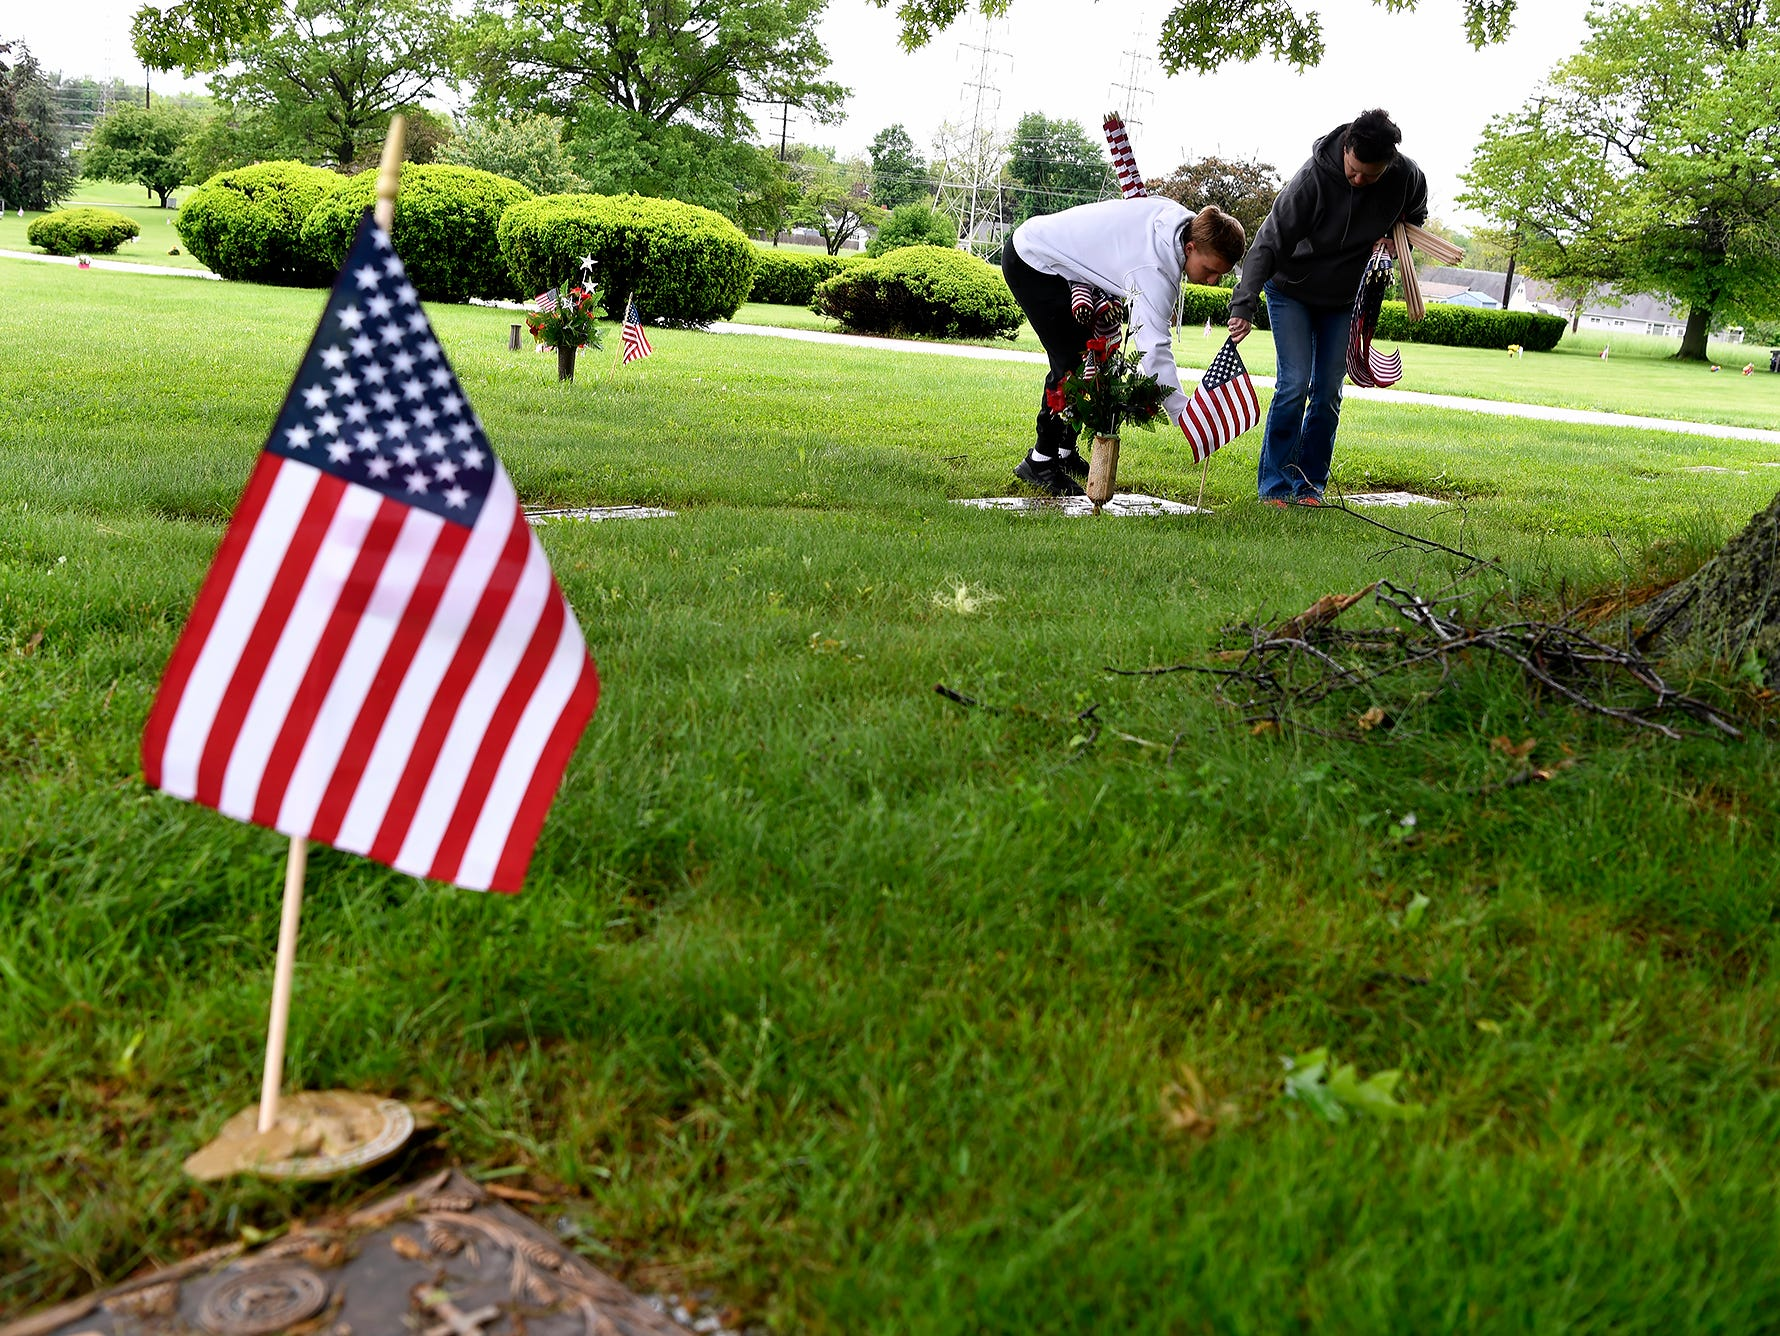 Gold Star mother Deb Etheridge and several volunteers place flags on veteran graves at Prospect Hill Cemetery in preparation for Memorial Day, Monday, May 13, 2019.John A. Pavoncello photo